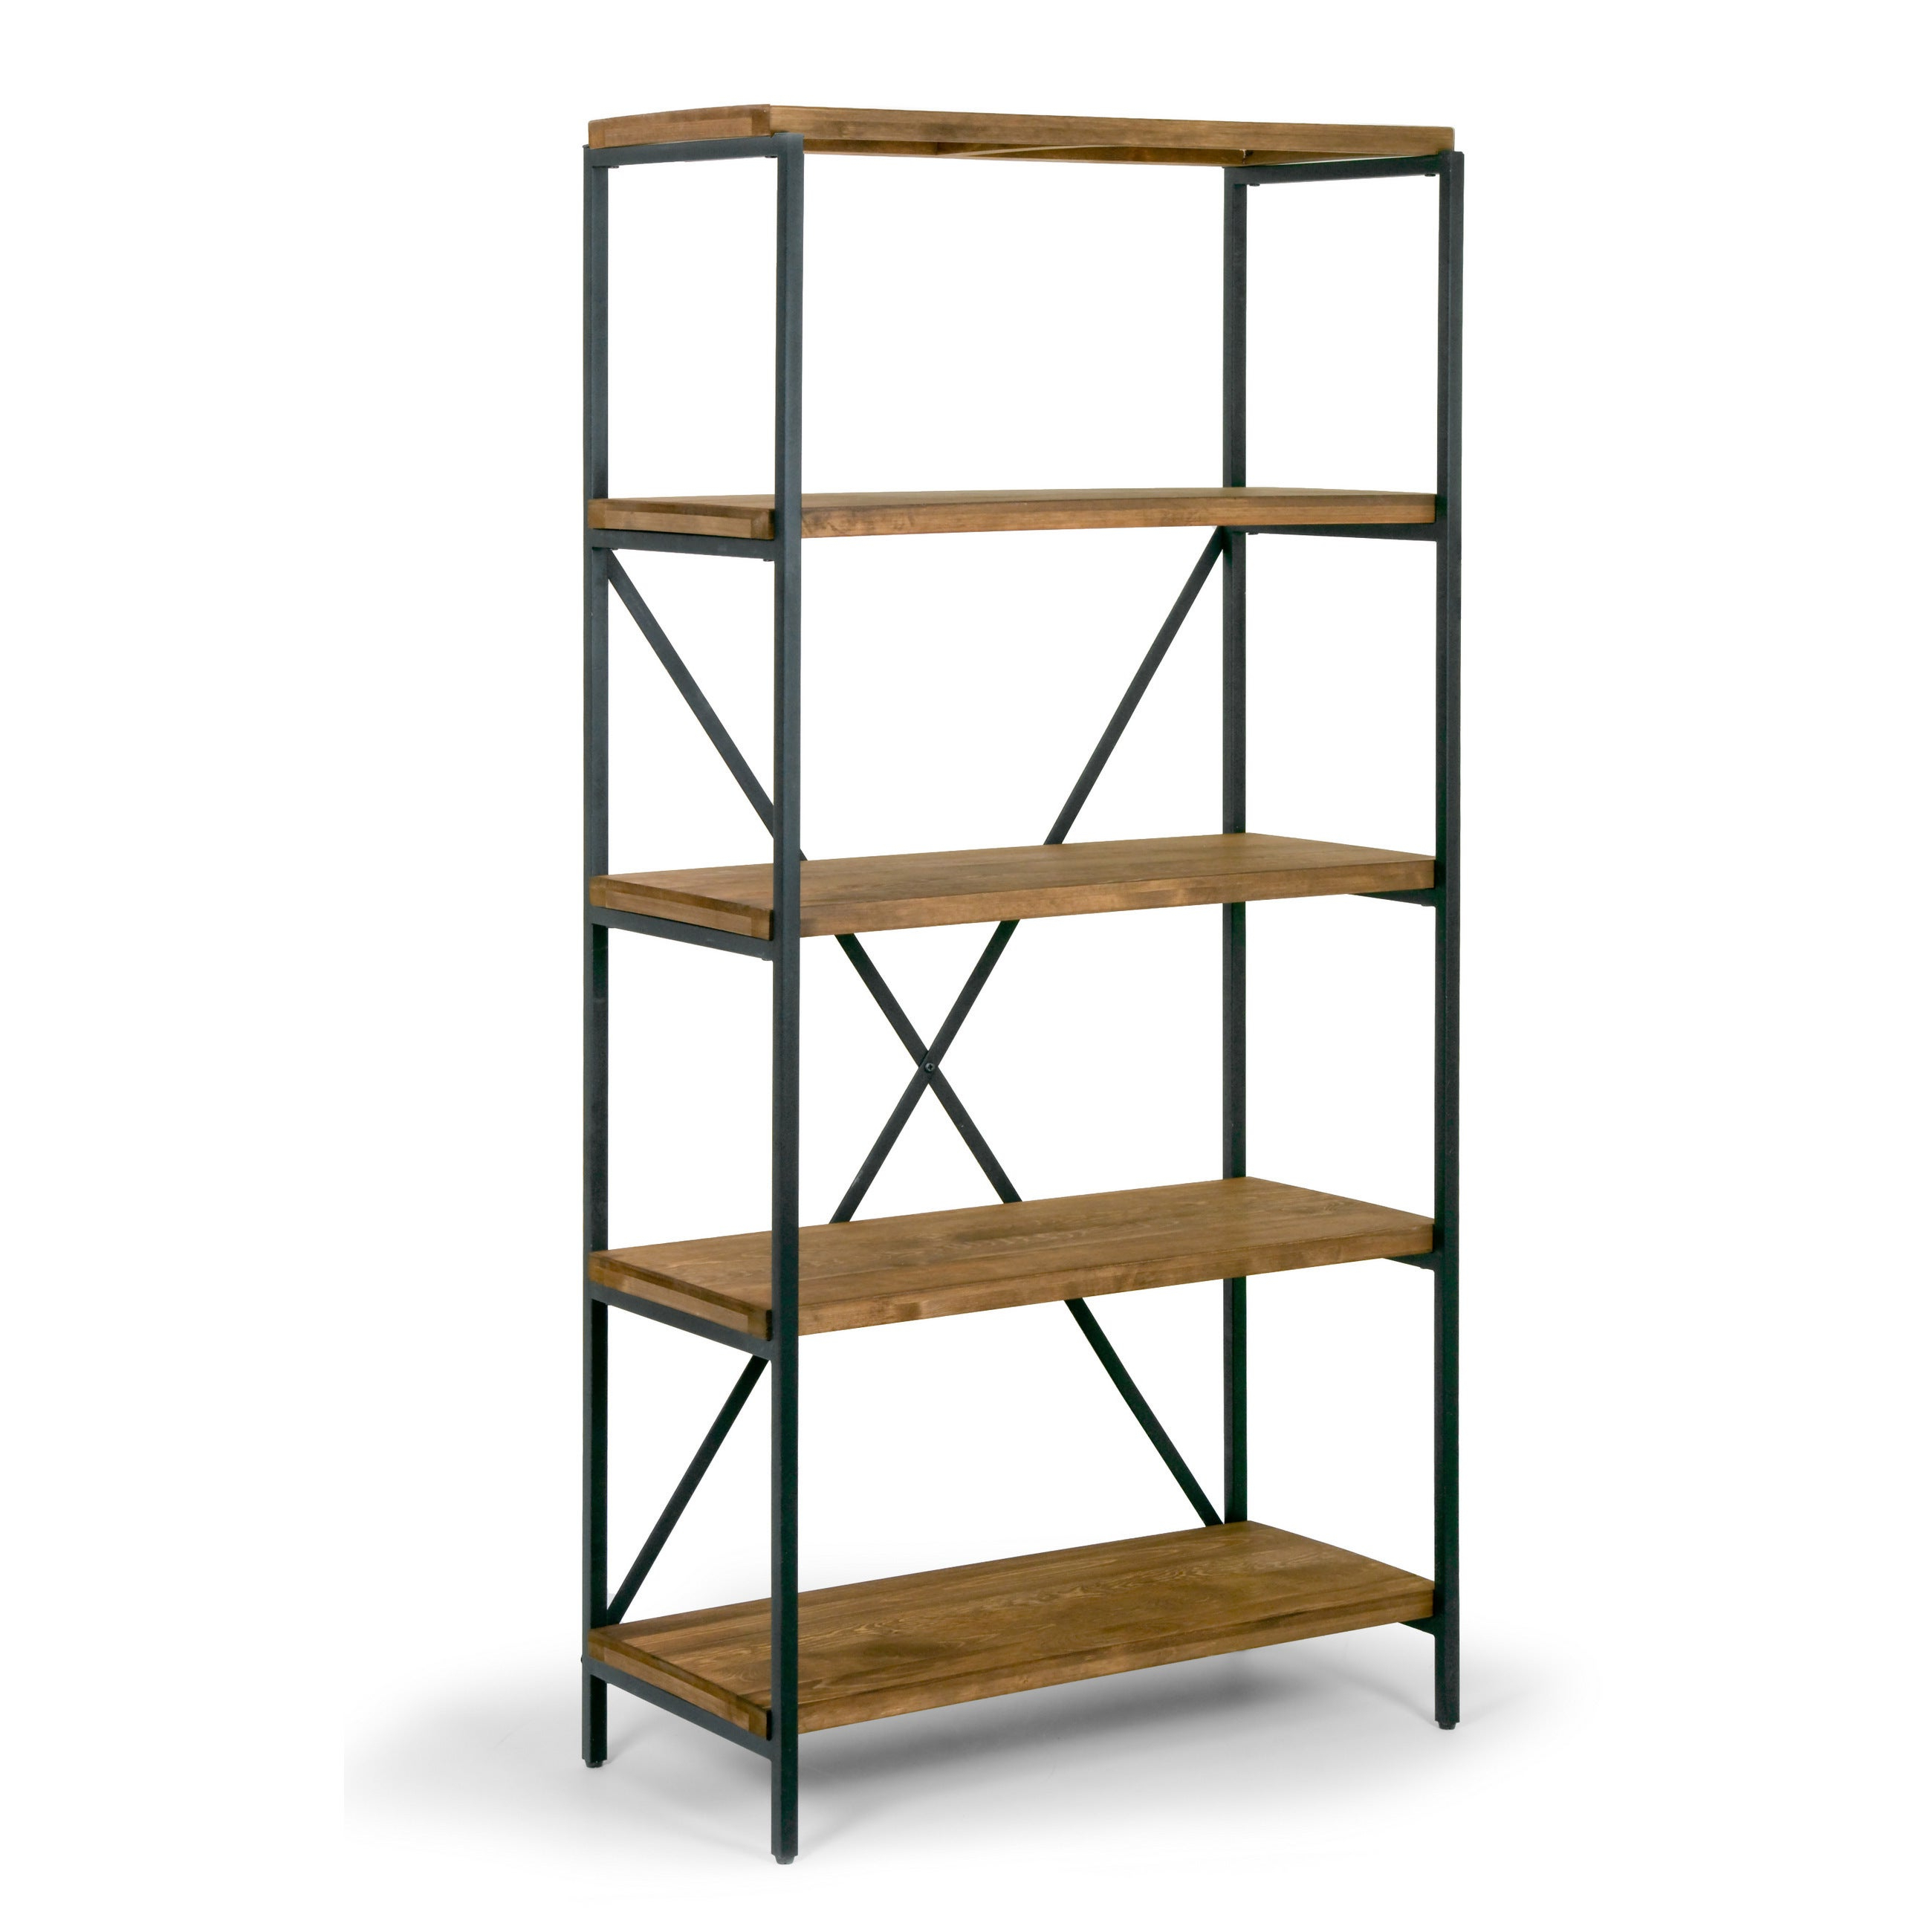 Buy Etagere Bookshelves & Bookcases Online At Overstock With Regard To Fashionable Ebba Etagere Bookcases (View 11 of 20)